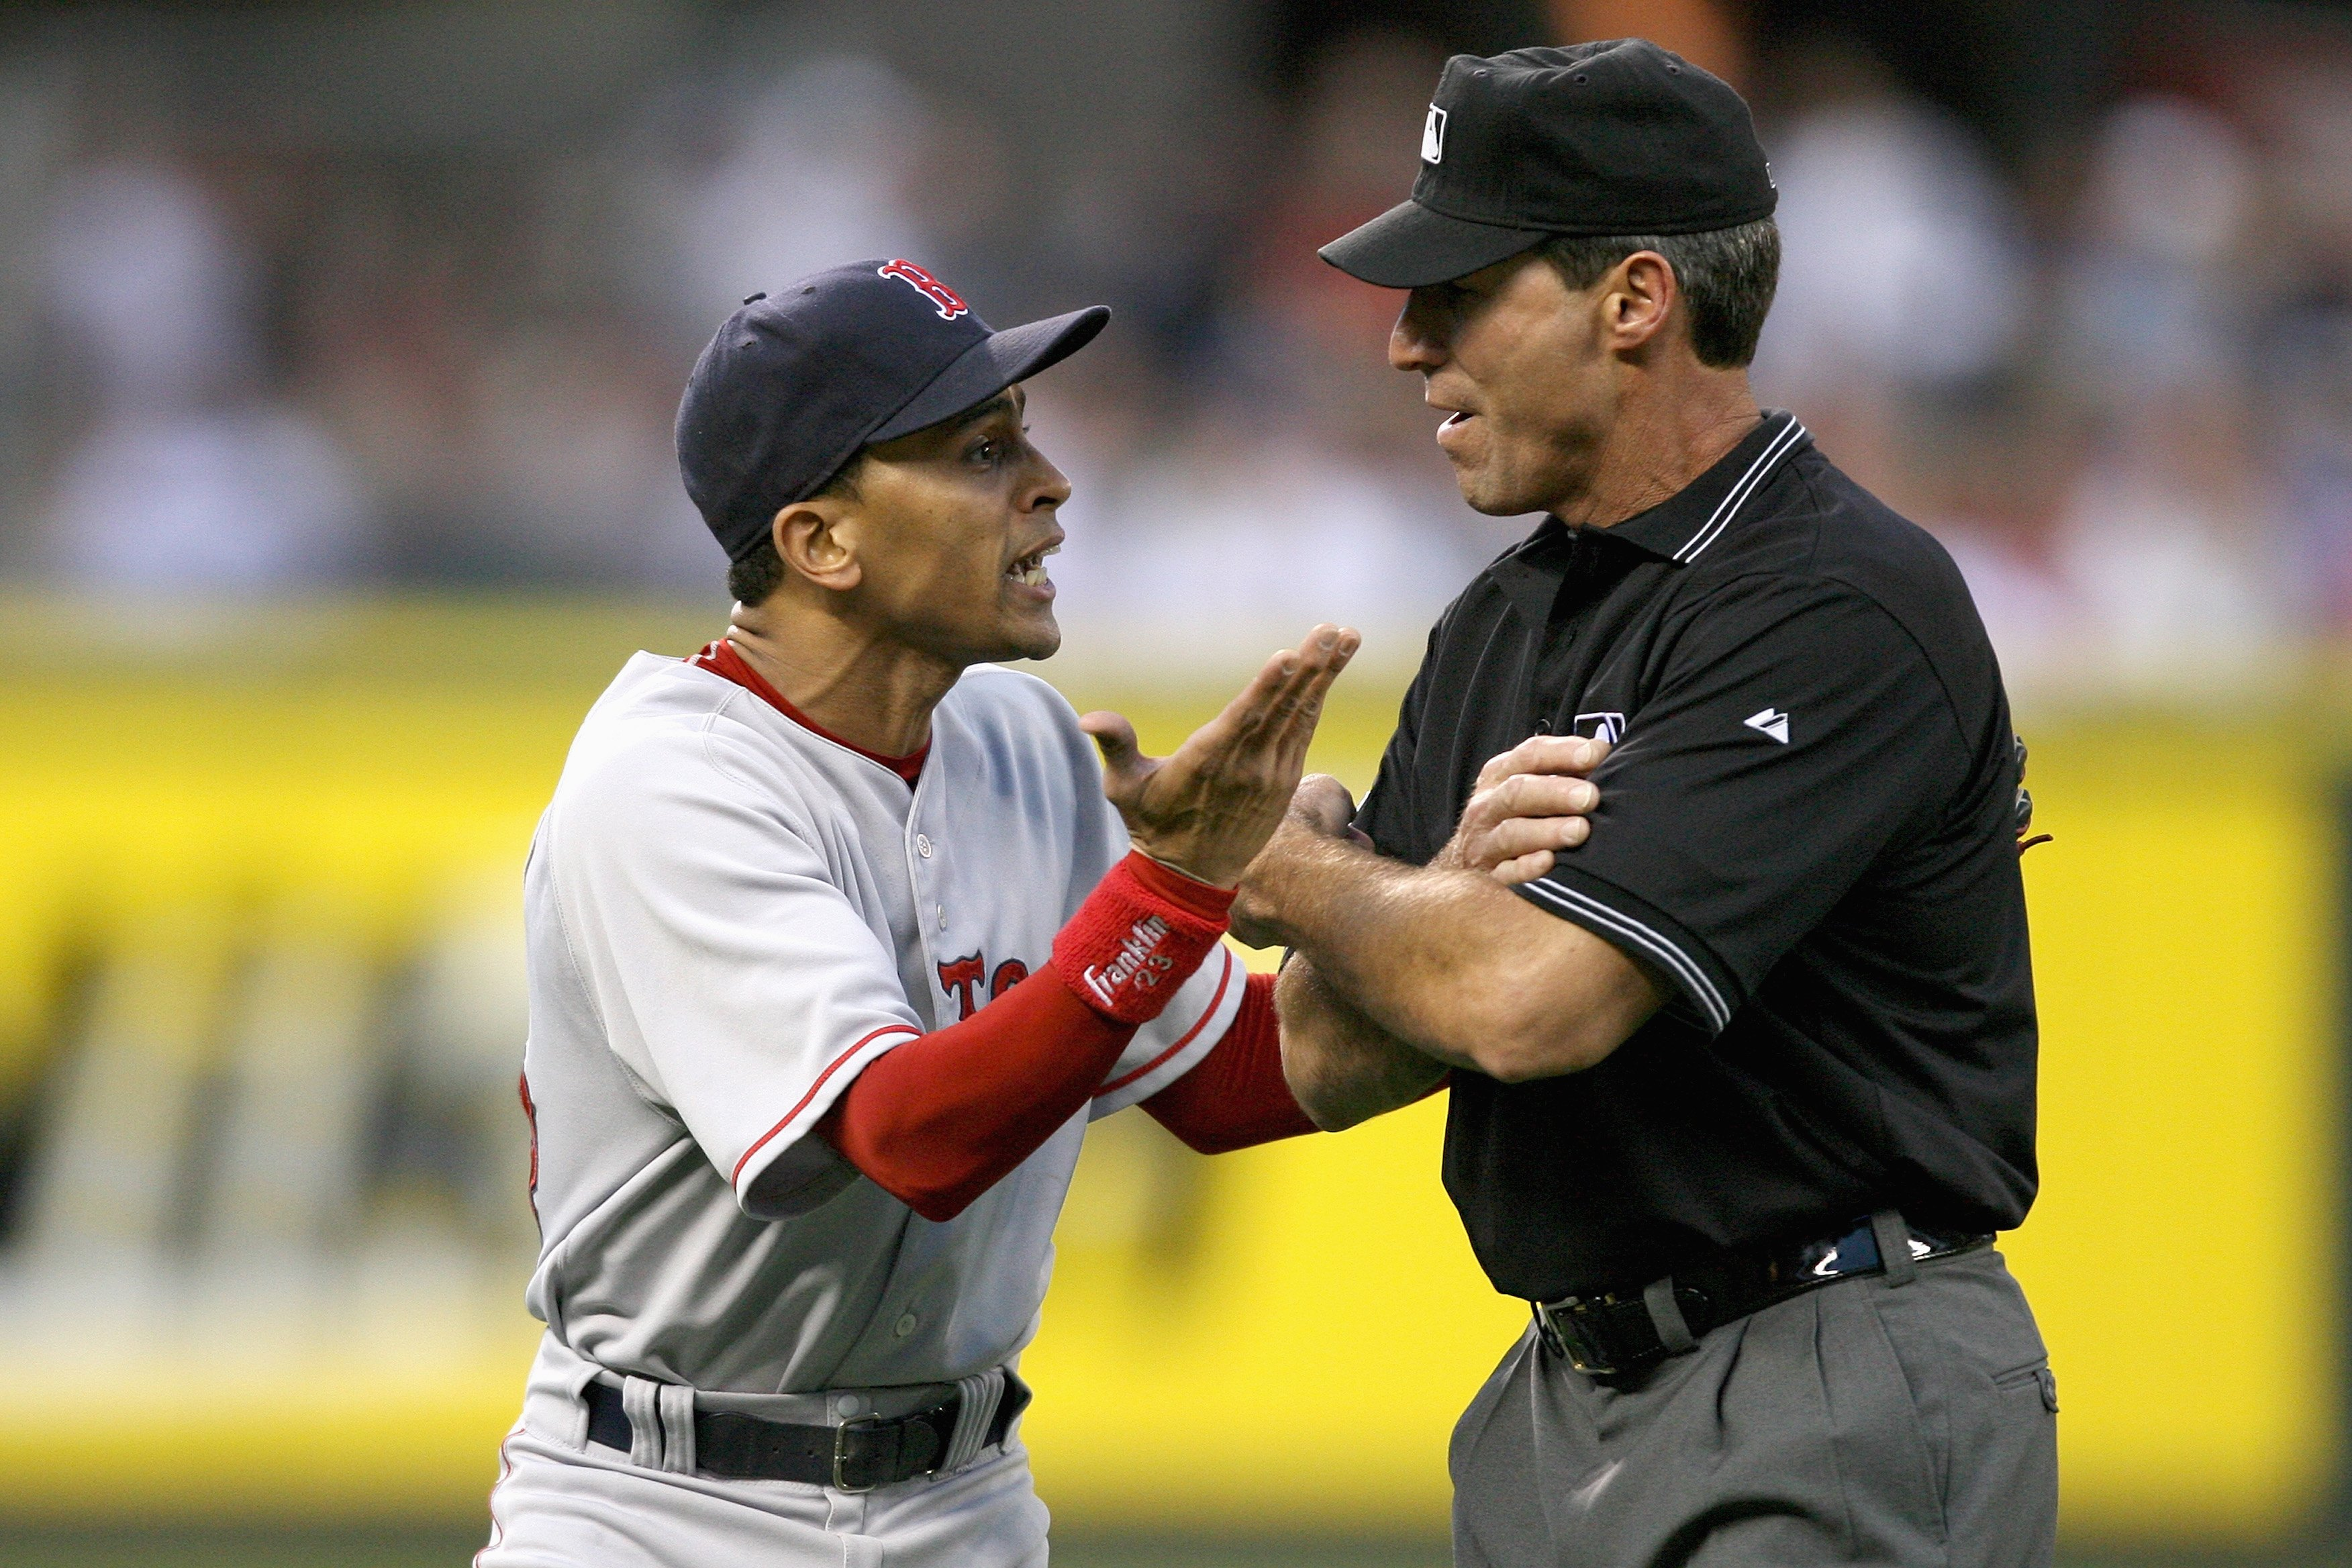 SEATTLE - MAY 27: Shortstop Julio Lugo #23 of the Boston Red Sox argues with third base umpire Angel Hernandez after being ejected in the fifth inning against the Seattle Mariners May 27, 2008 at Safeco Field in Seattle, Washington. (Photo by Otto Greule